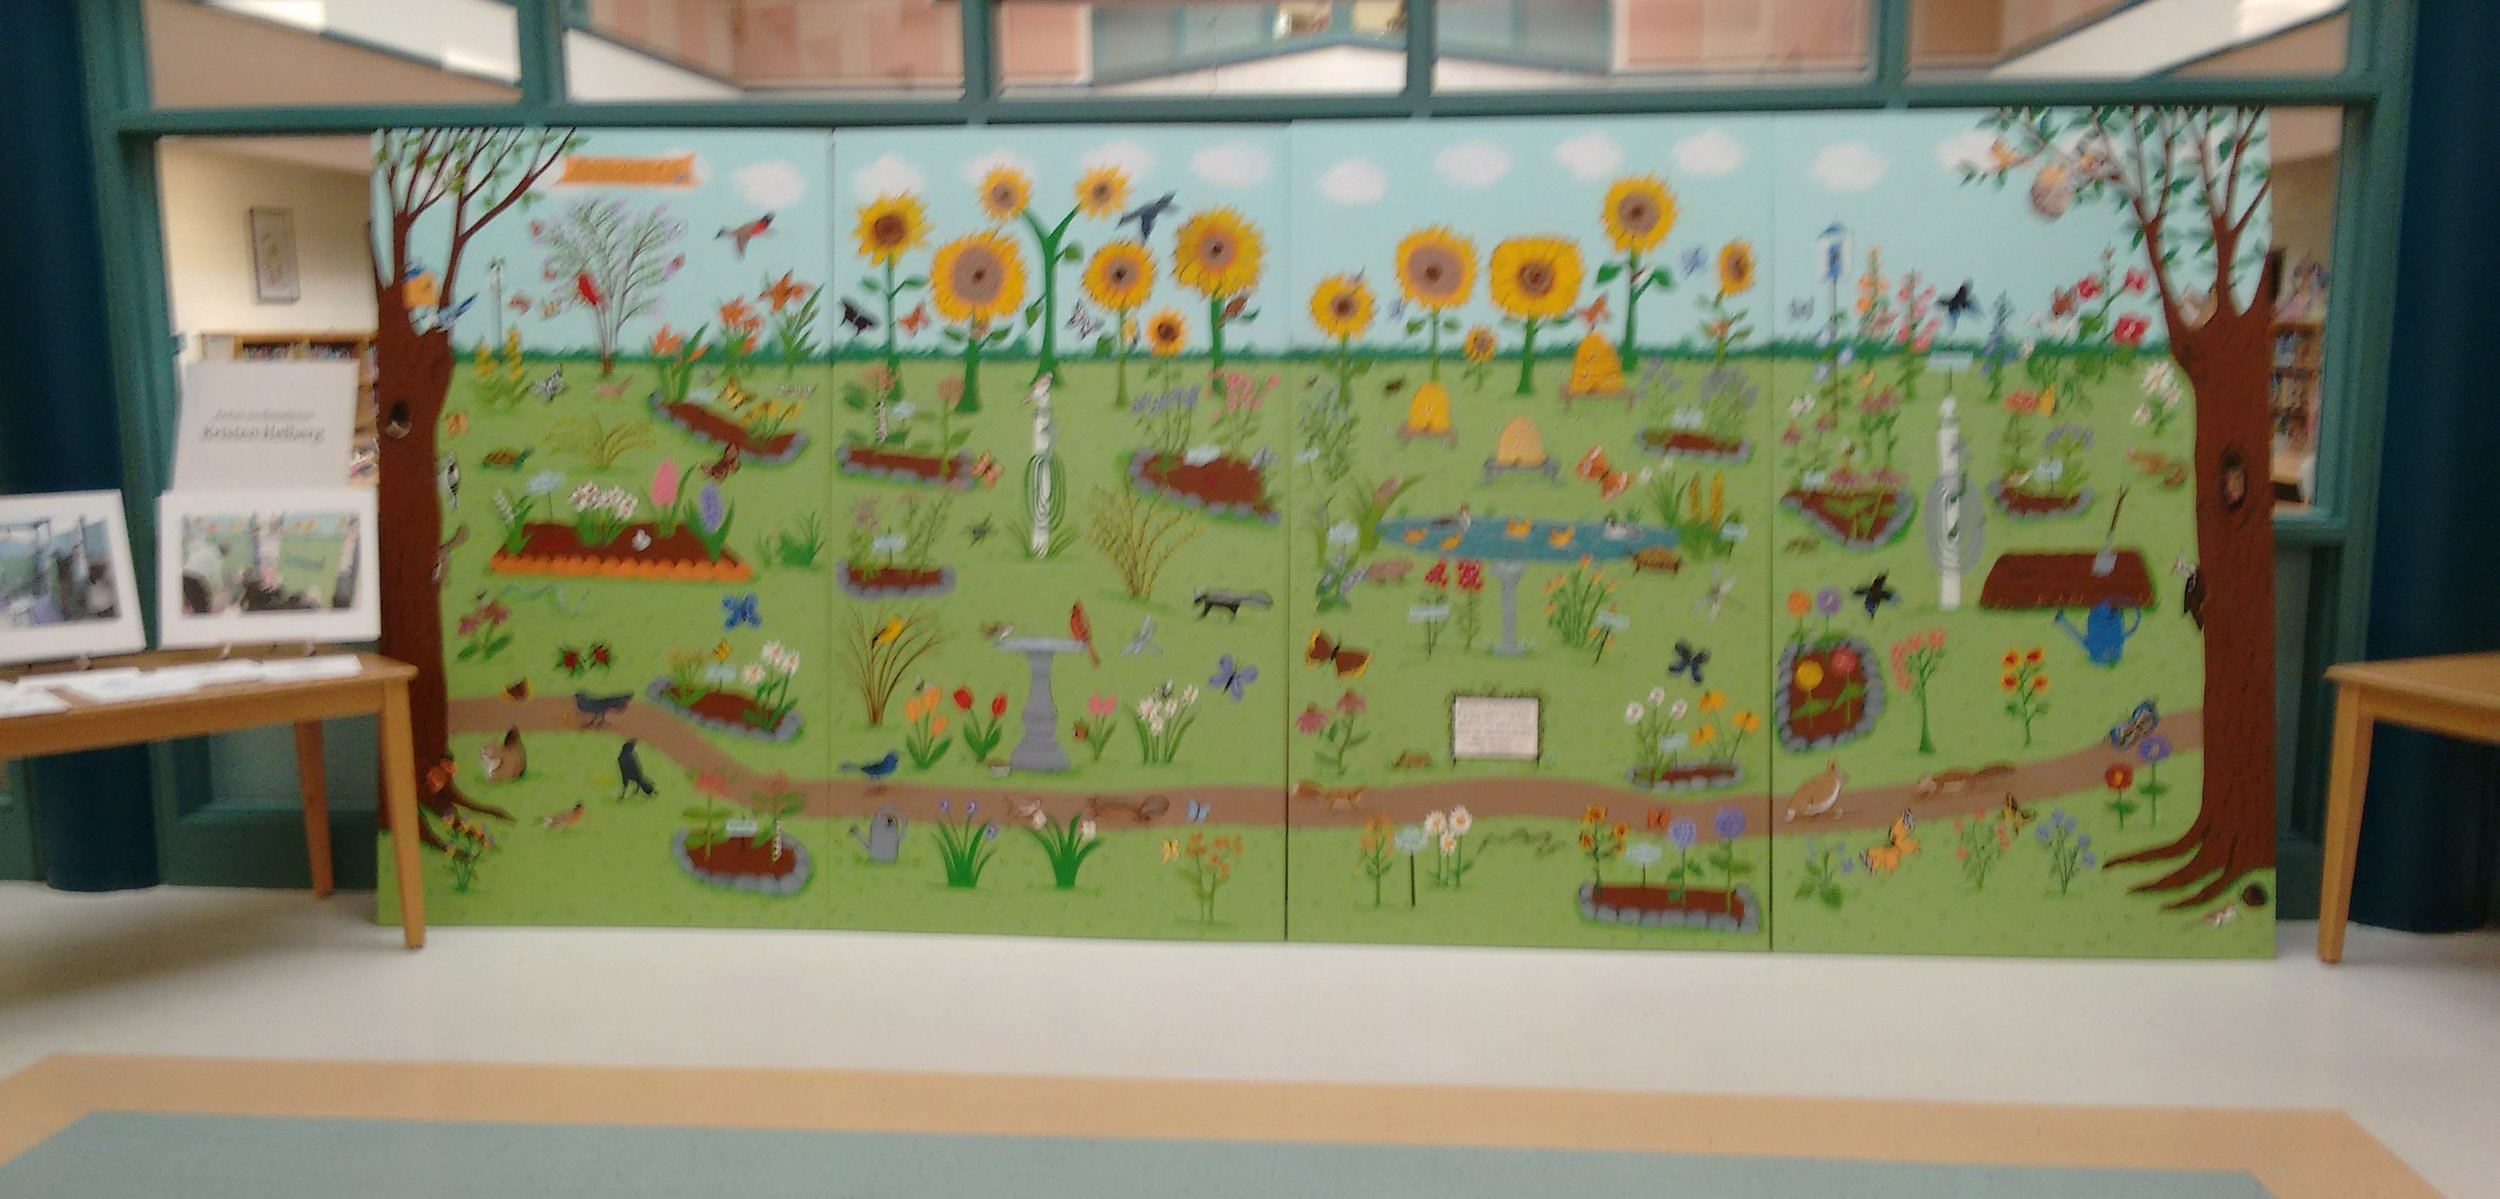 Butterfly Garden Mural on display in lobby